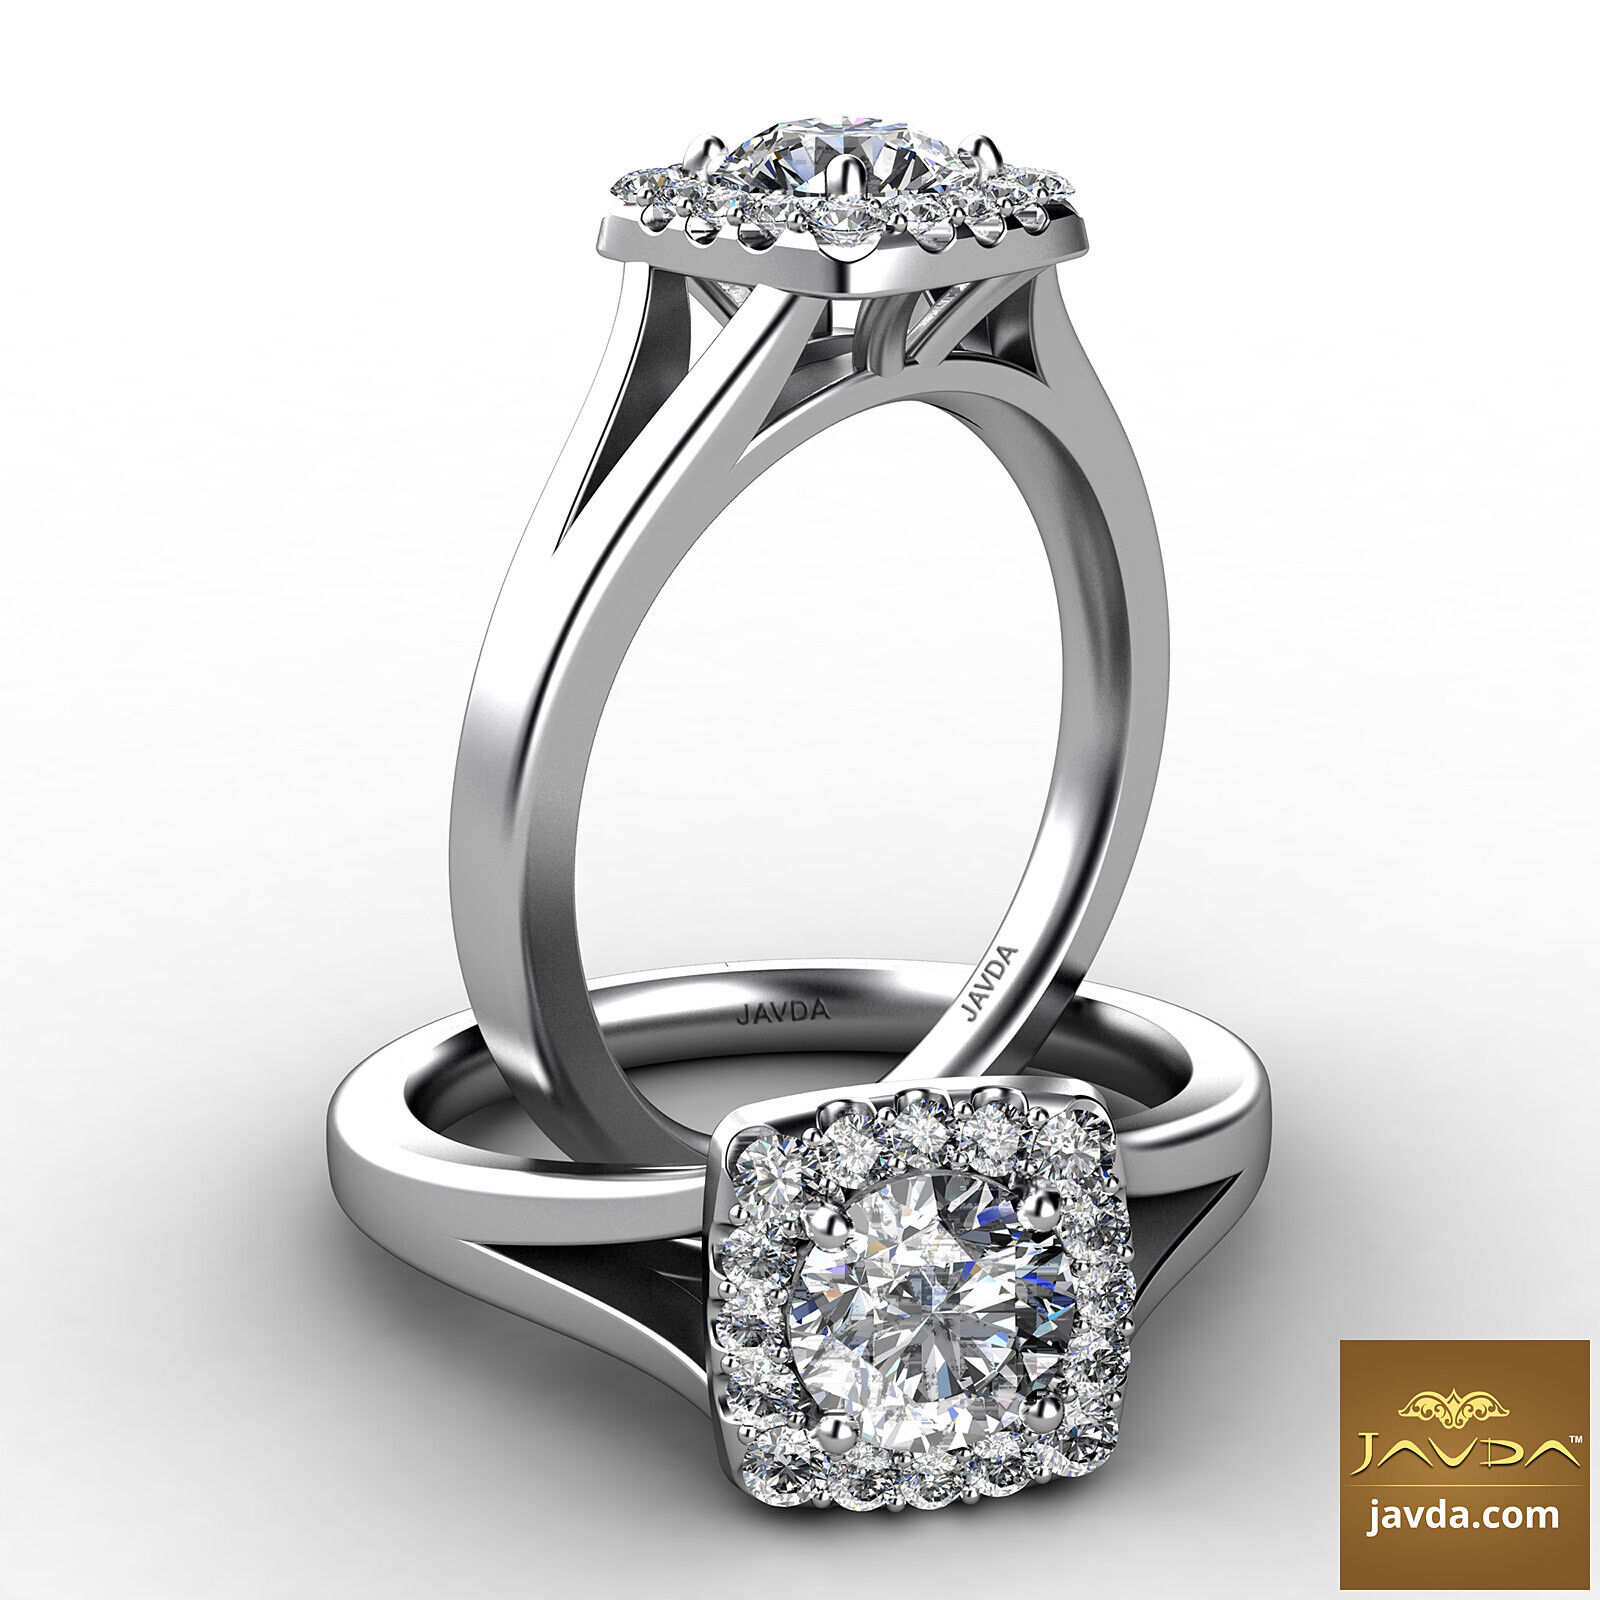 1.8ctw Halo Split Shank Cathedral Round Diamond Engagement Ring GIA H-VS2 W Gold